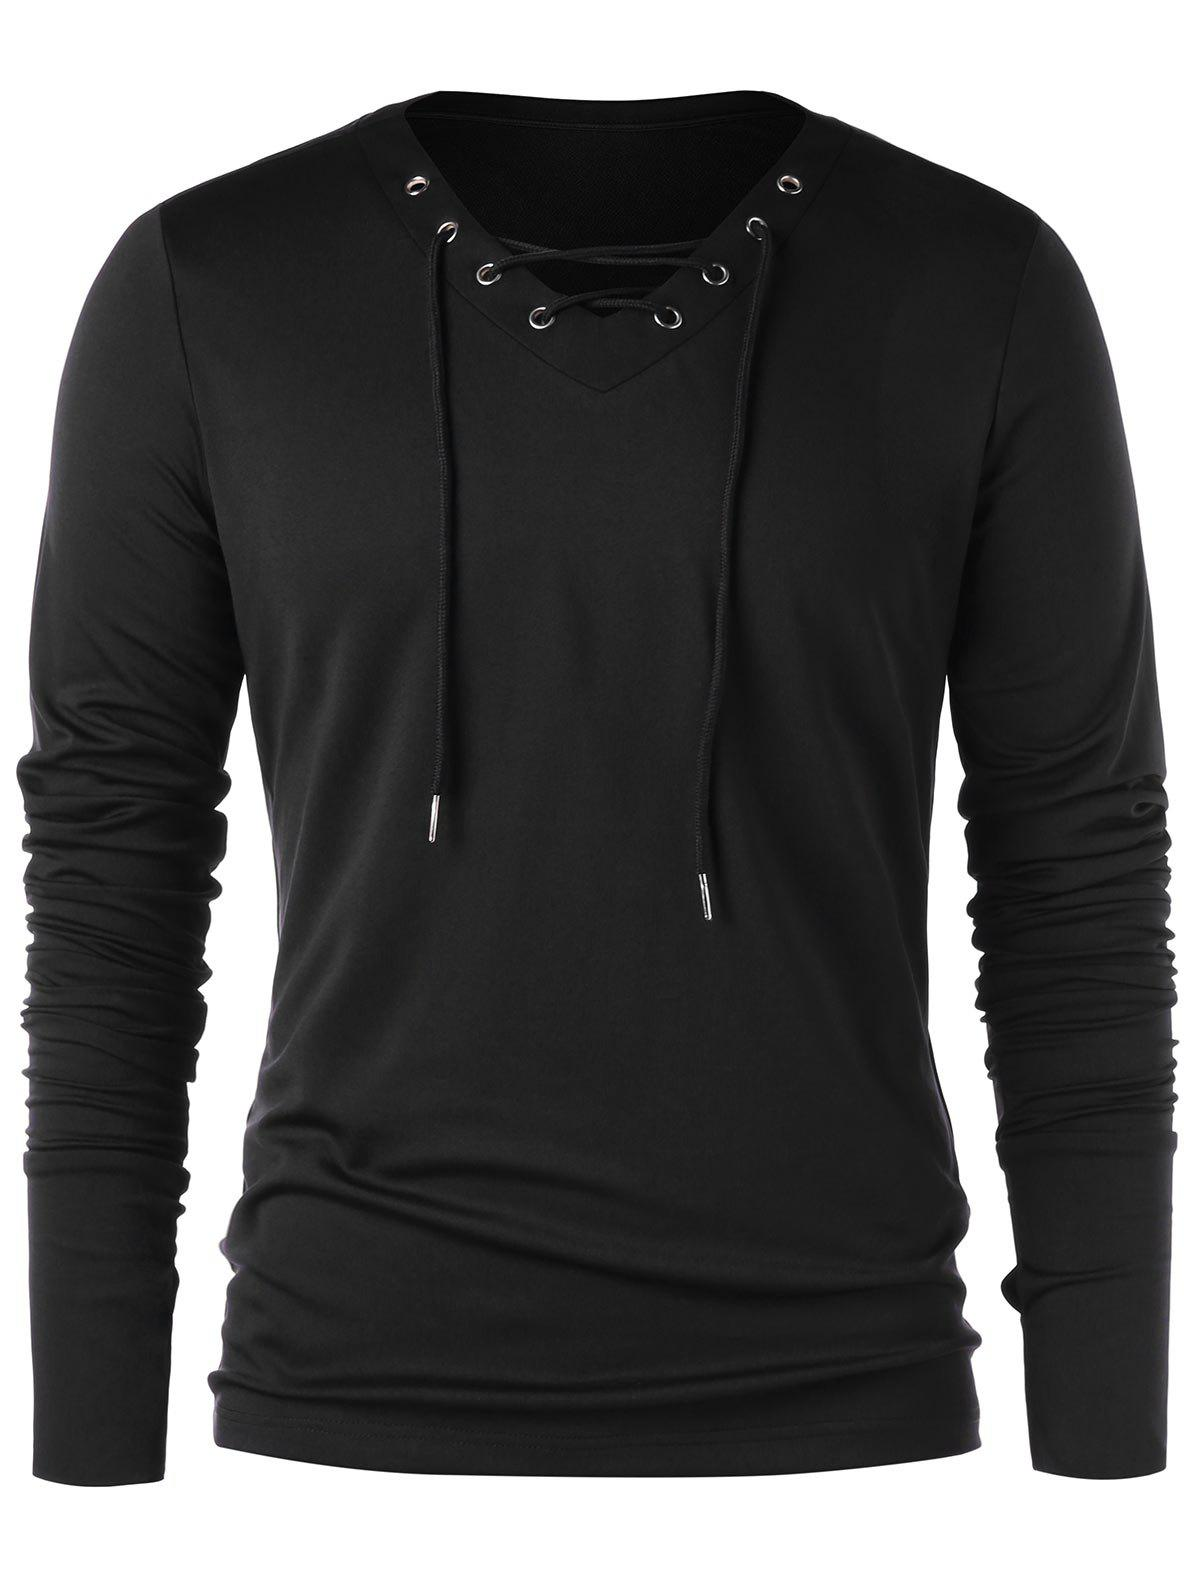 Lace Up Full Sleeve with Finger Hole T-shirt - BLACK M